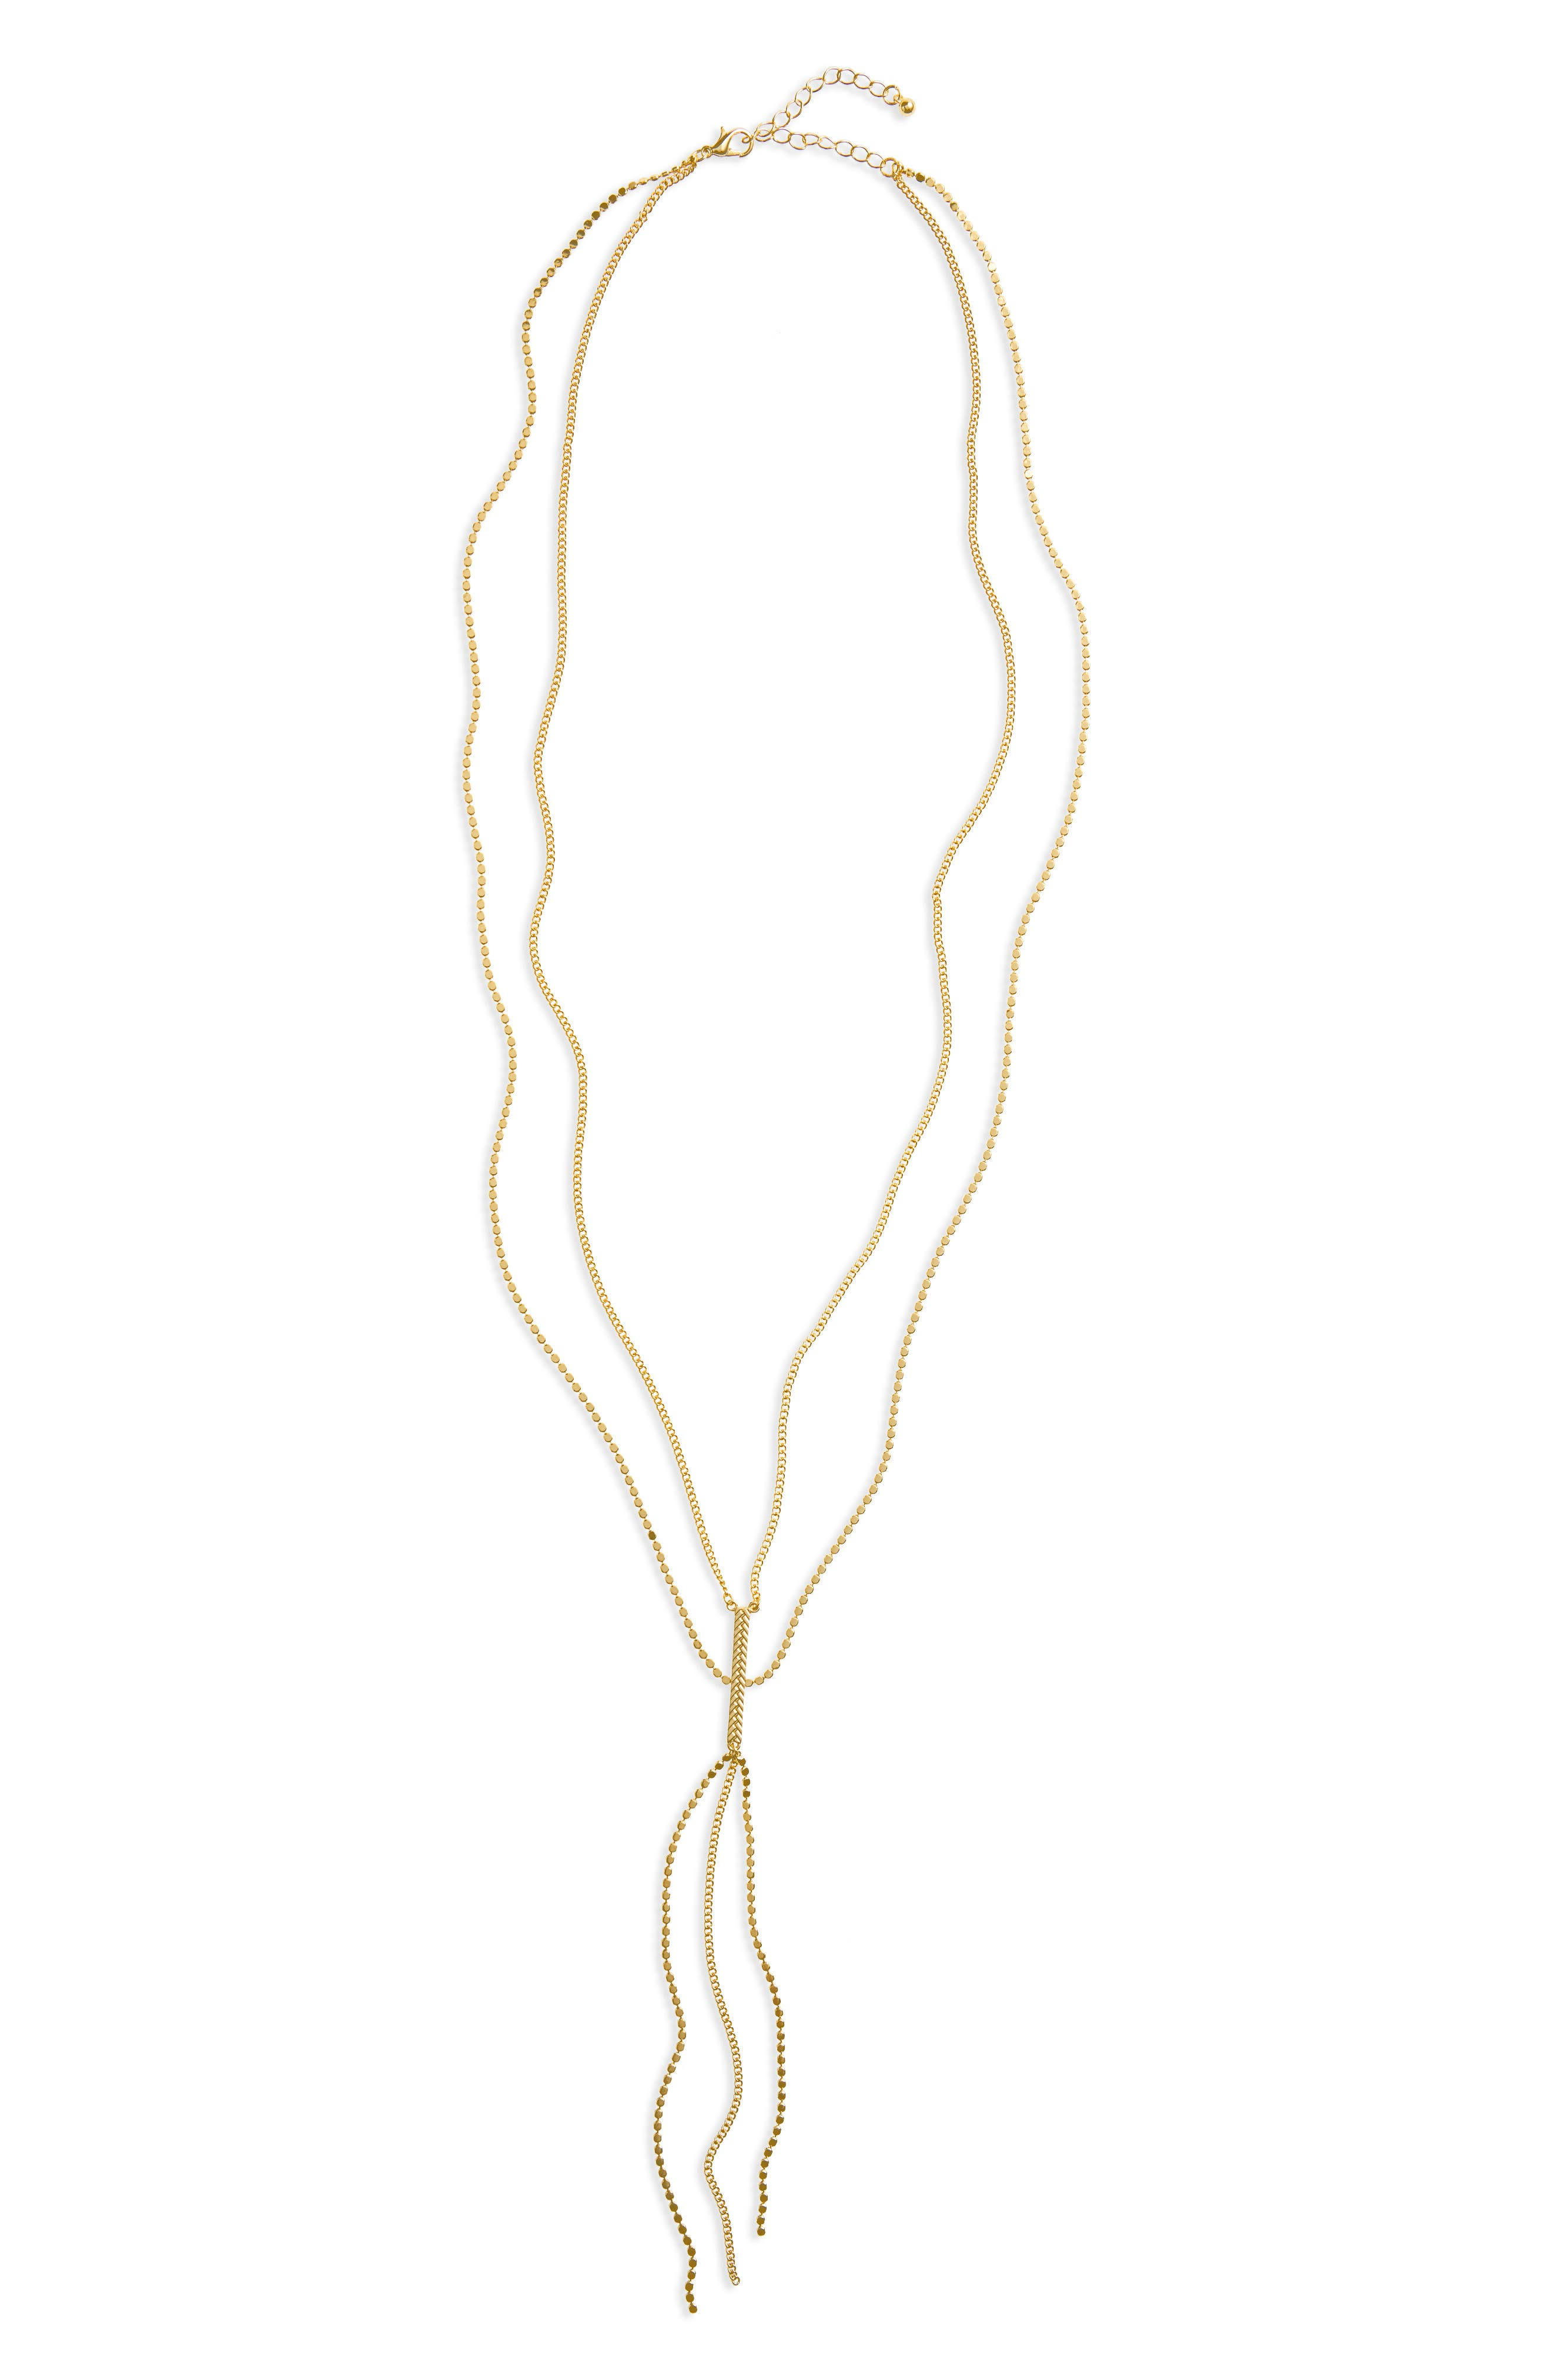 Alternate Image 1 Selected - Panacea Layered Y-Necklace